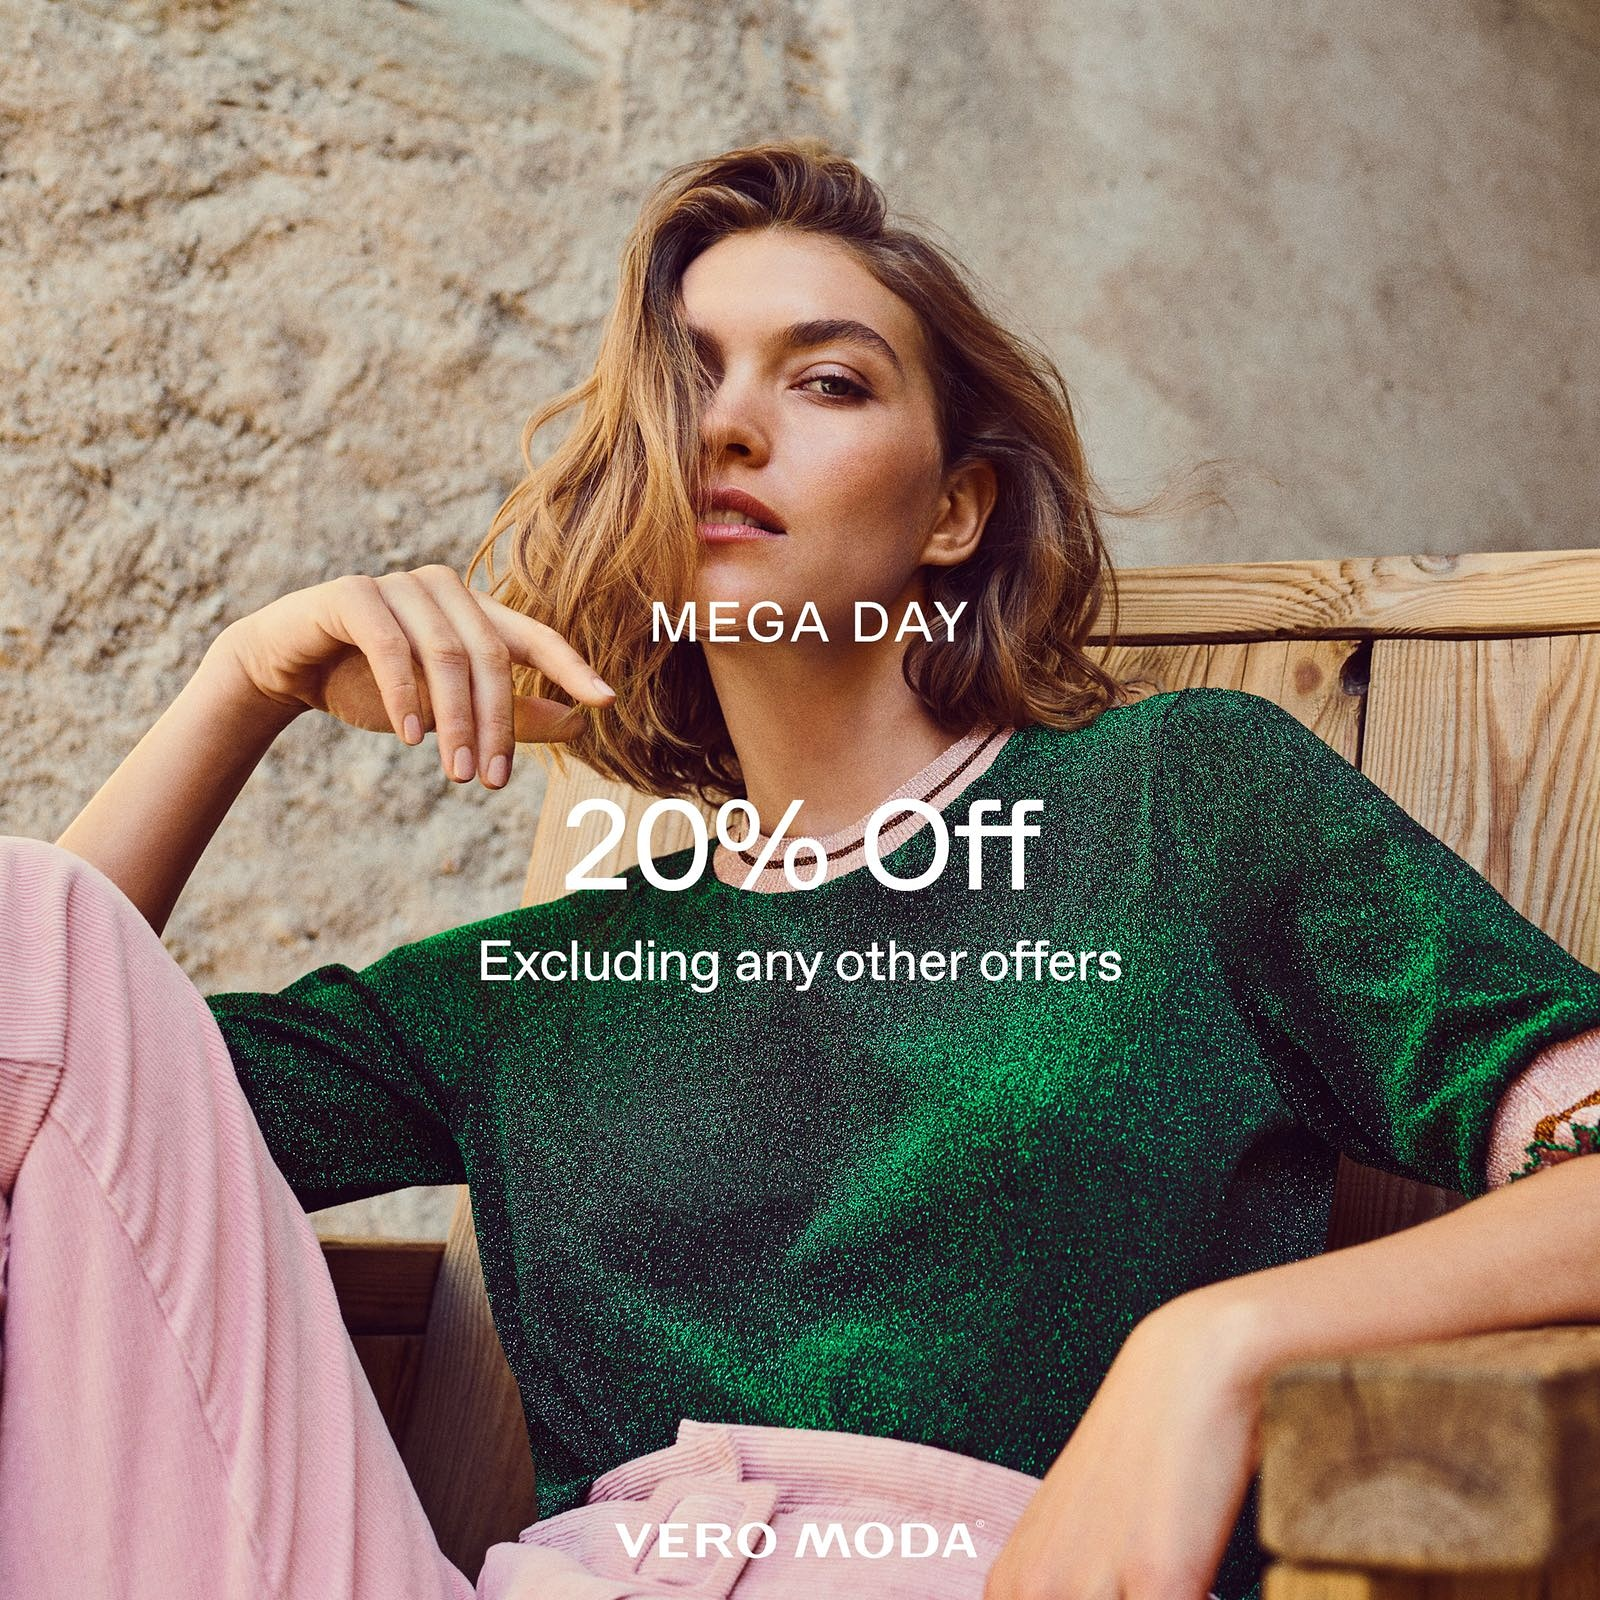 MEGA DAY kicks off today with 20% OFF in store at Vero Moda